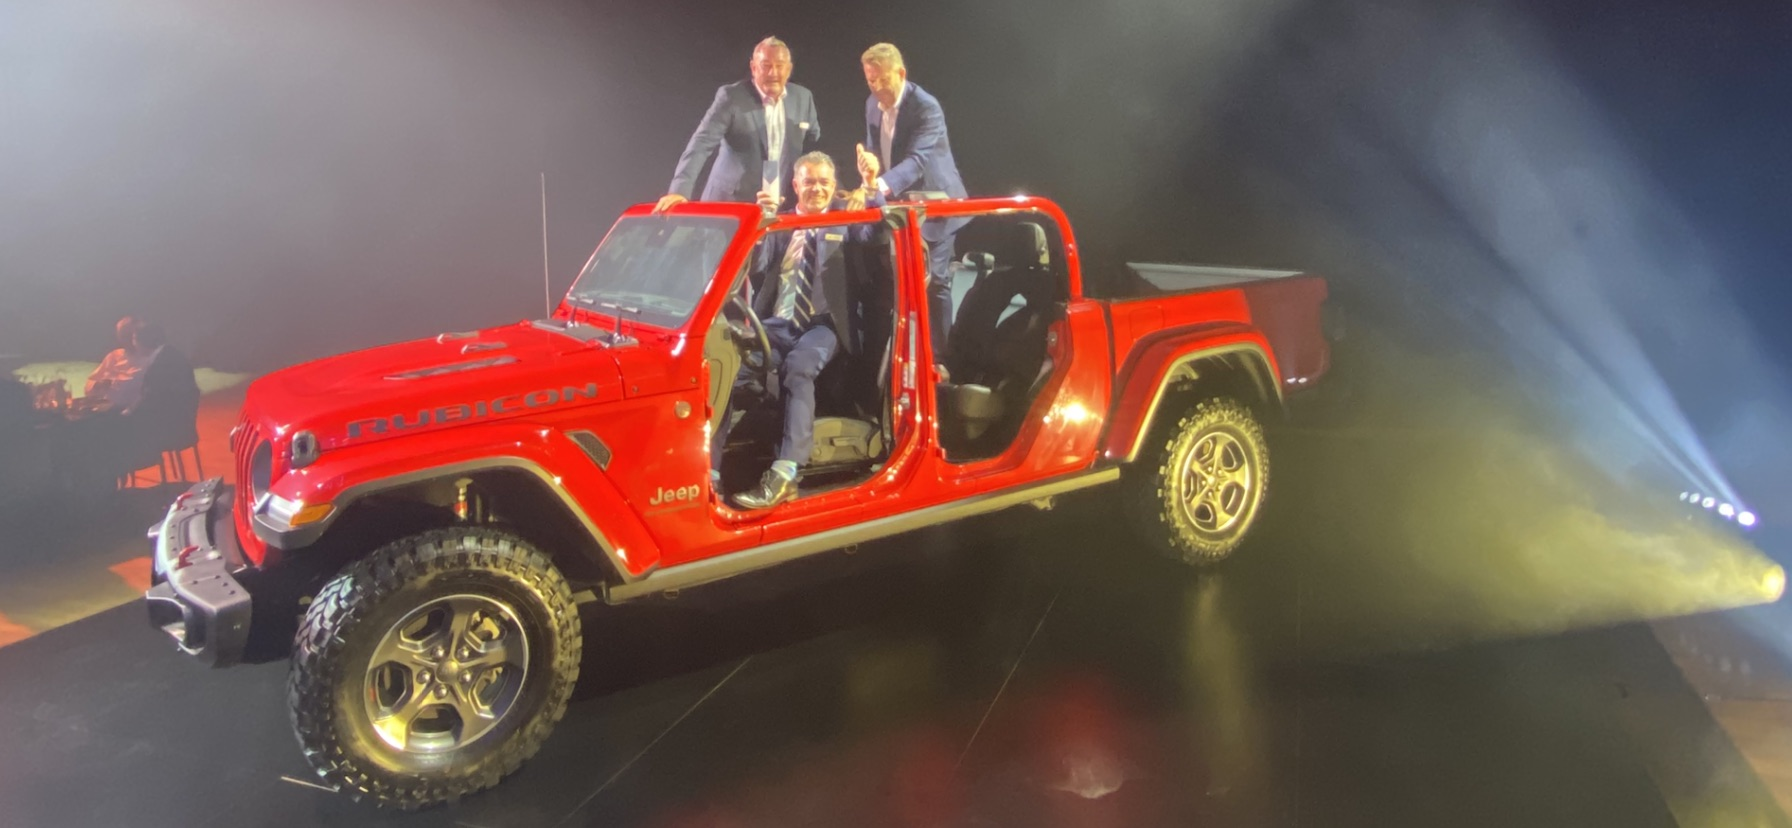 Tynan Jeep Awarded 2019 NSW Jeep dealer of the Year